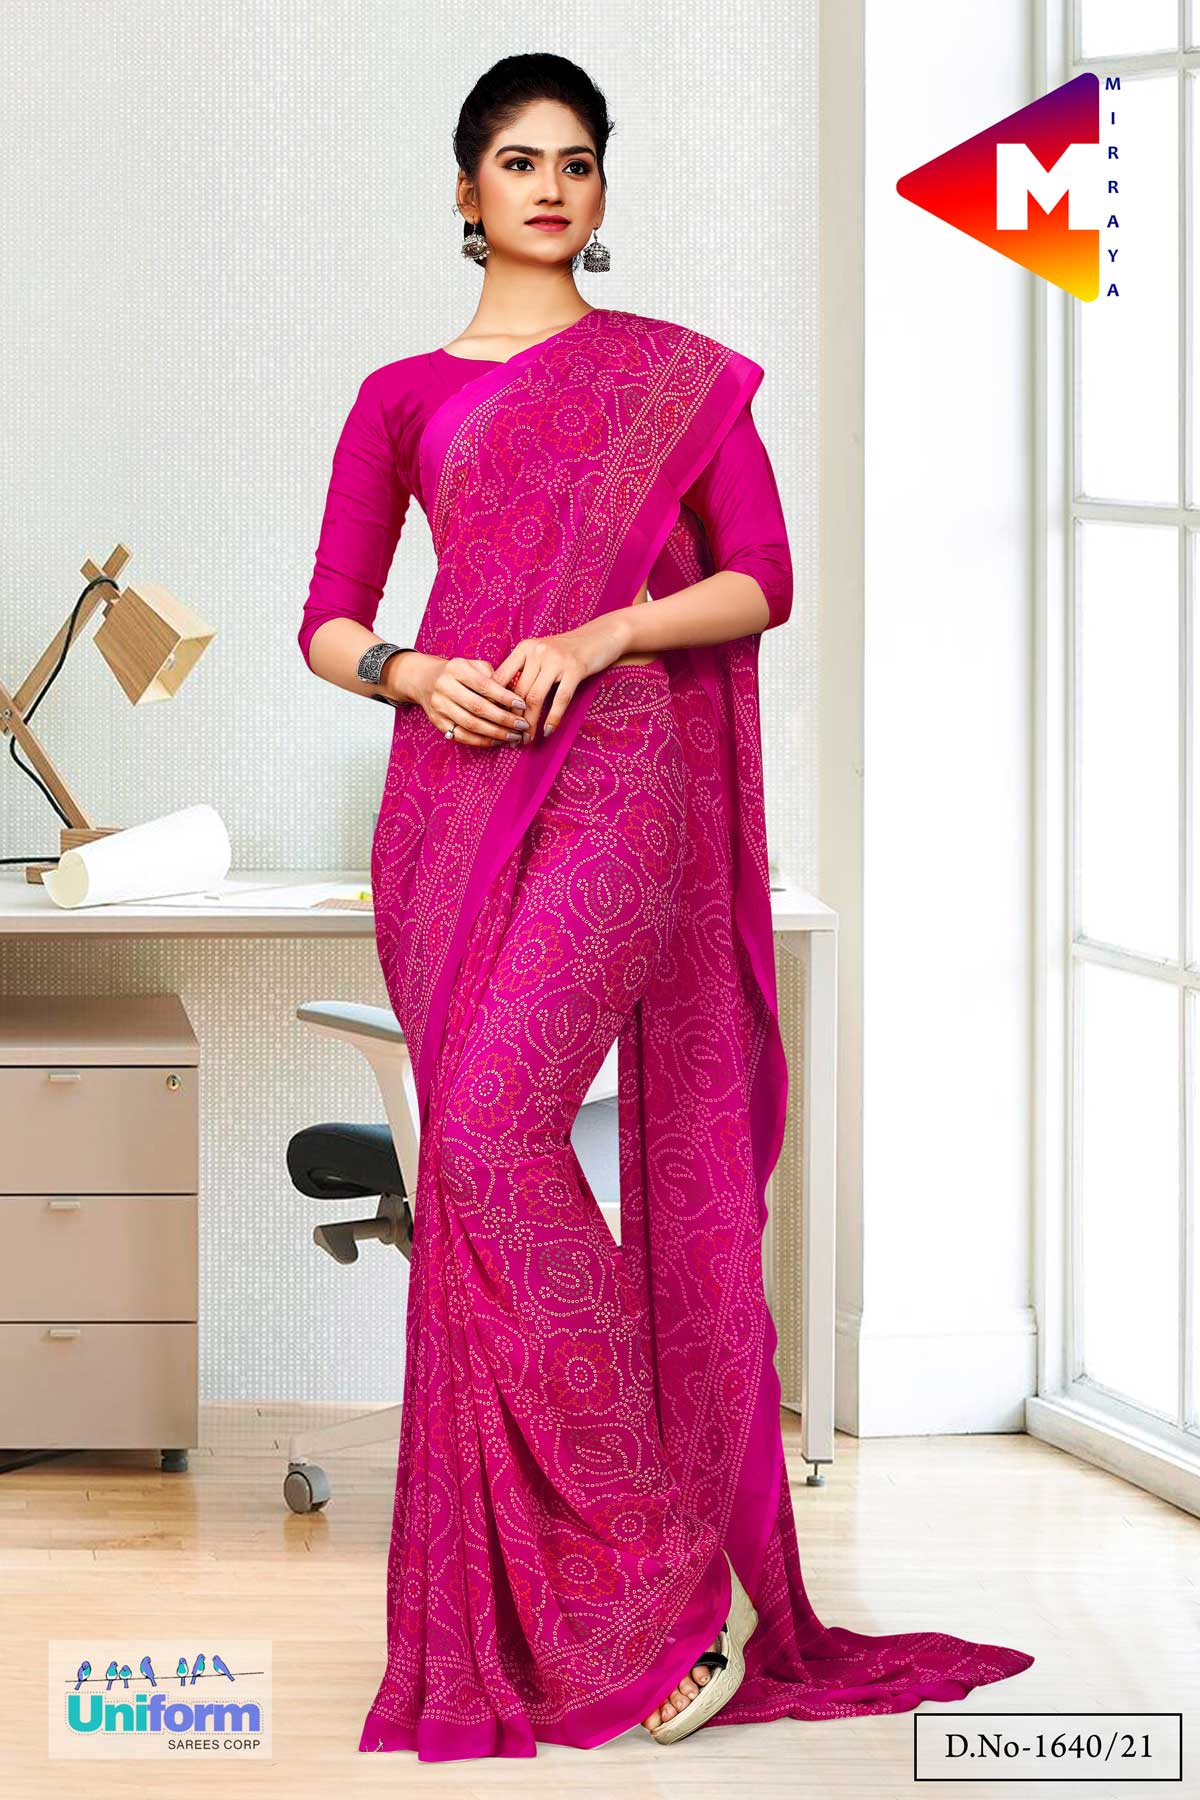 Bandhni Sarees for Temples